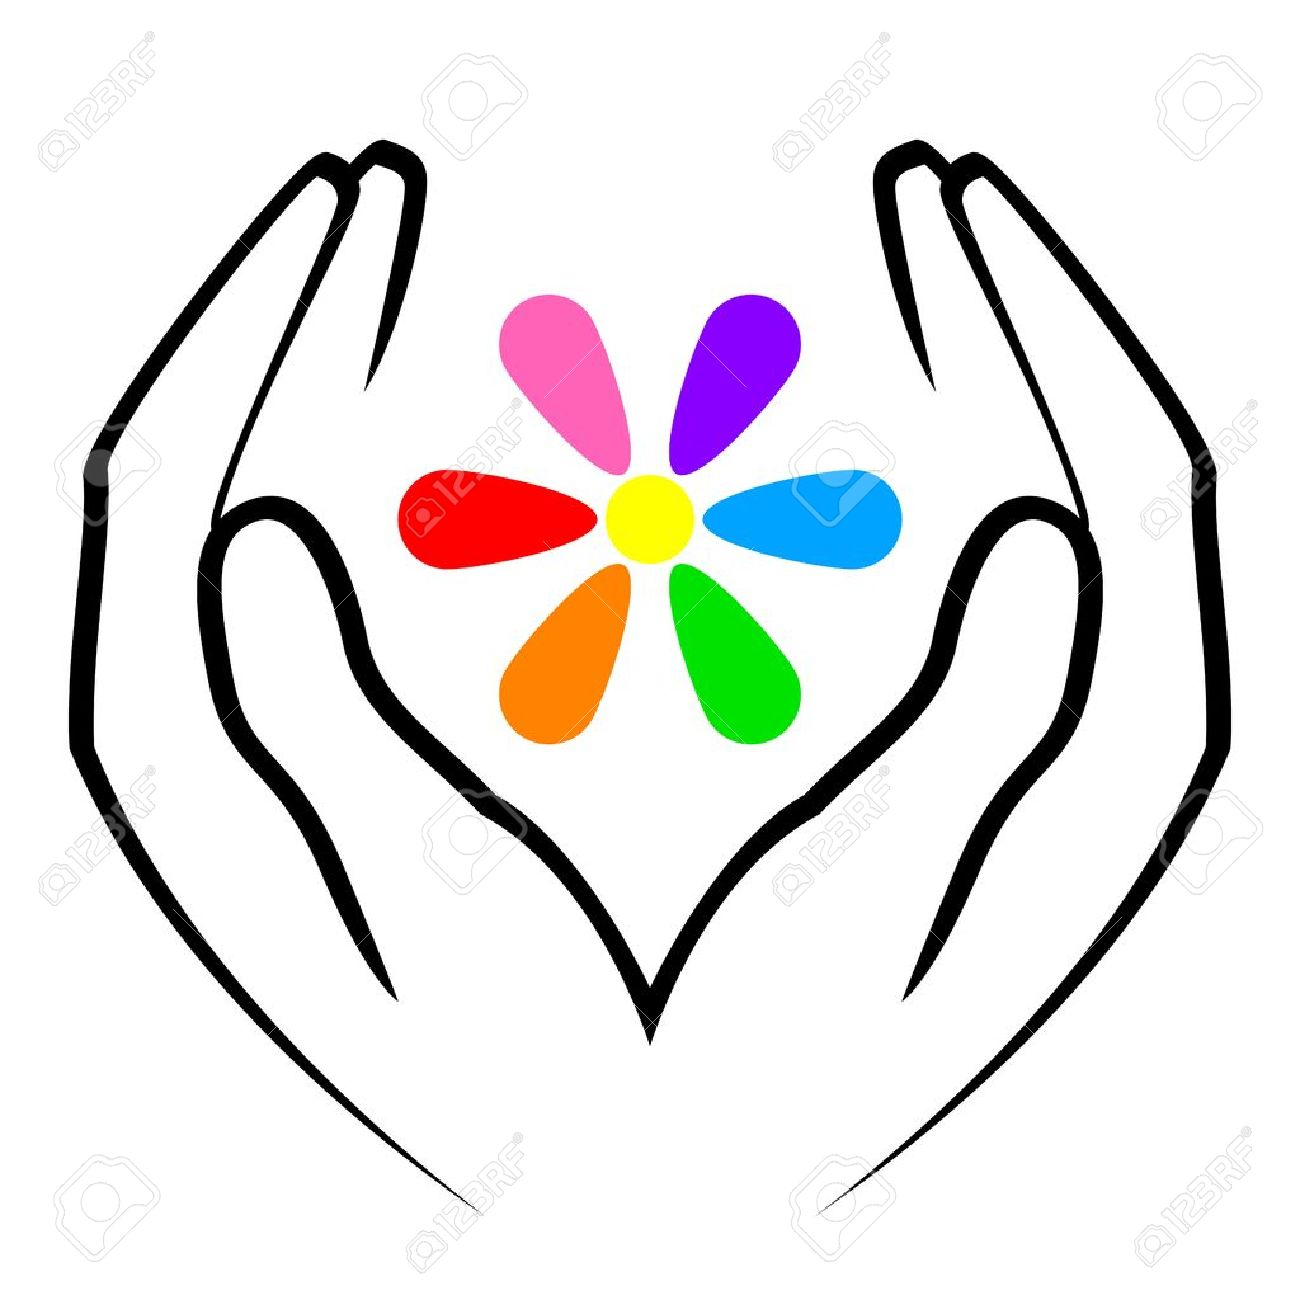 illustration of hands and flower royalty free cliparts vectors